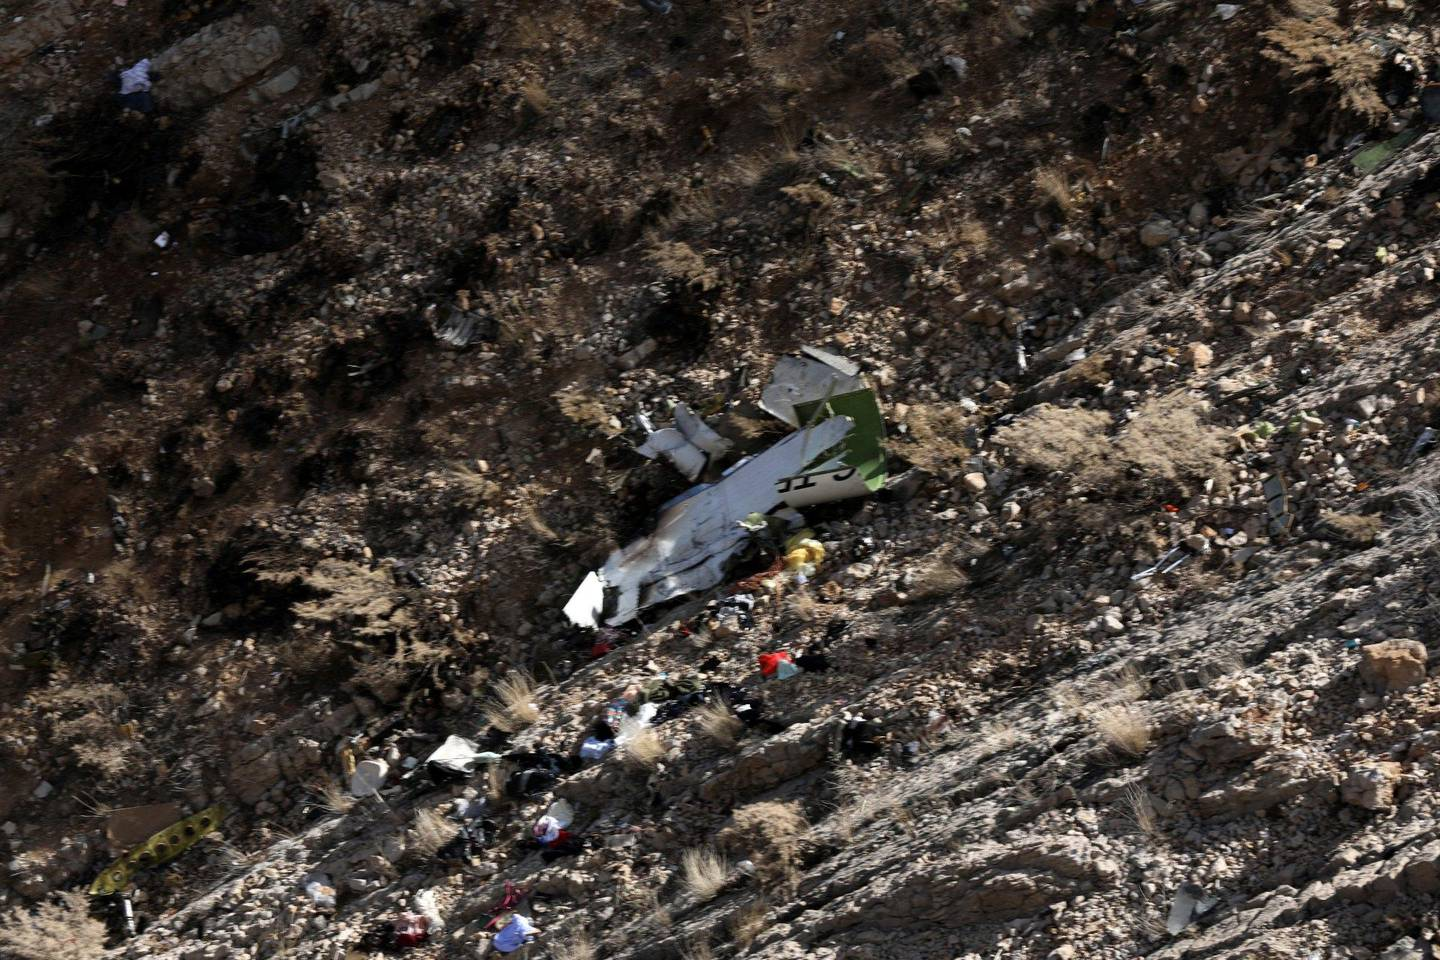 epa06597632 A view on the wreckage of Turkish Private jet is seen on a slope of a mountain around the city of Shahr-e Kord, Iran, 12 March 2018. According to media reports, 11 people died in the small Turkish private plane crash flying from United Arab Emirates to Istanbul on 11 March 2018, so far 10 bodies wew recovered from the wreckage.  EPA/ALIREZA MOTAMEDI BEST QUALITY AVAILABLE